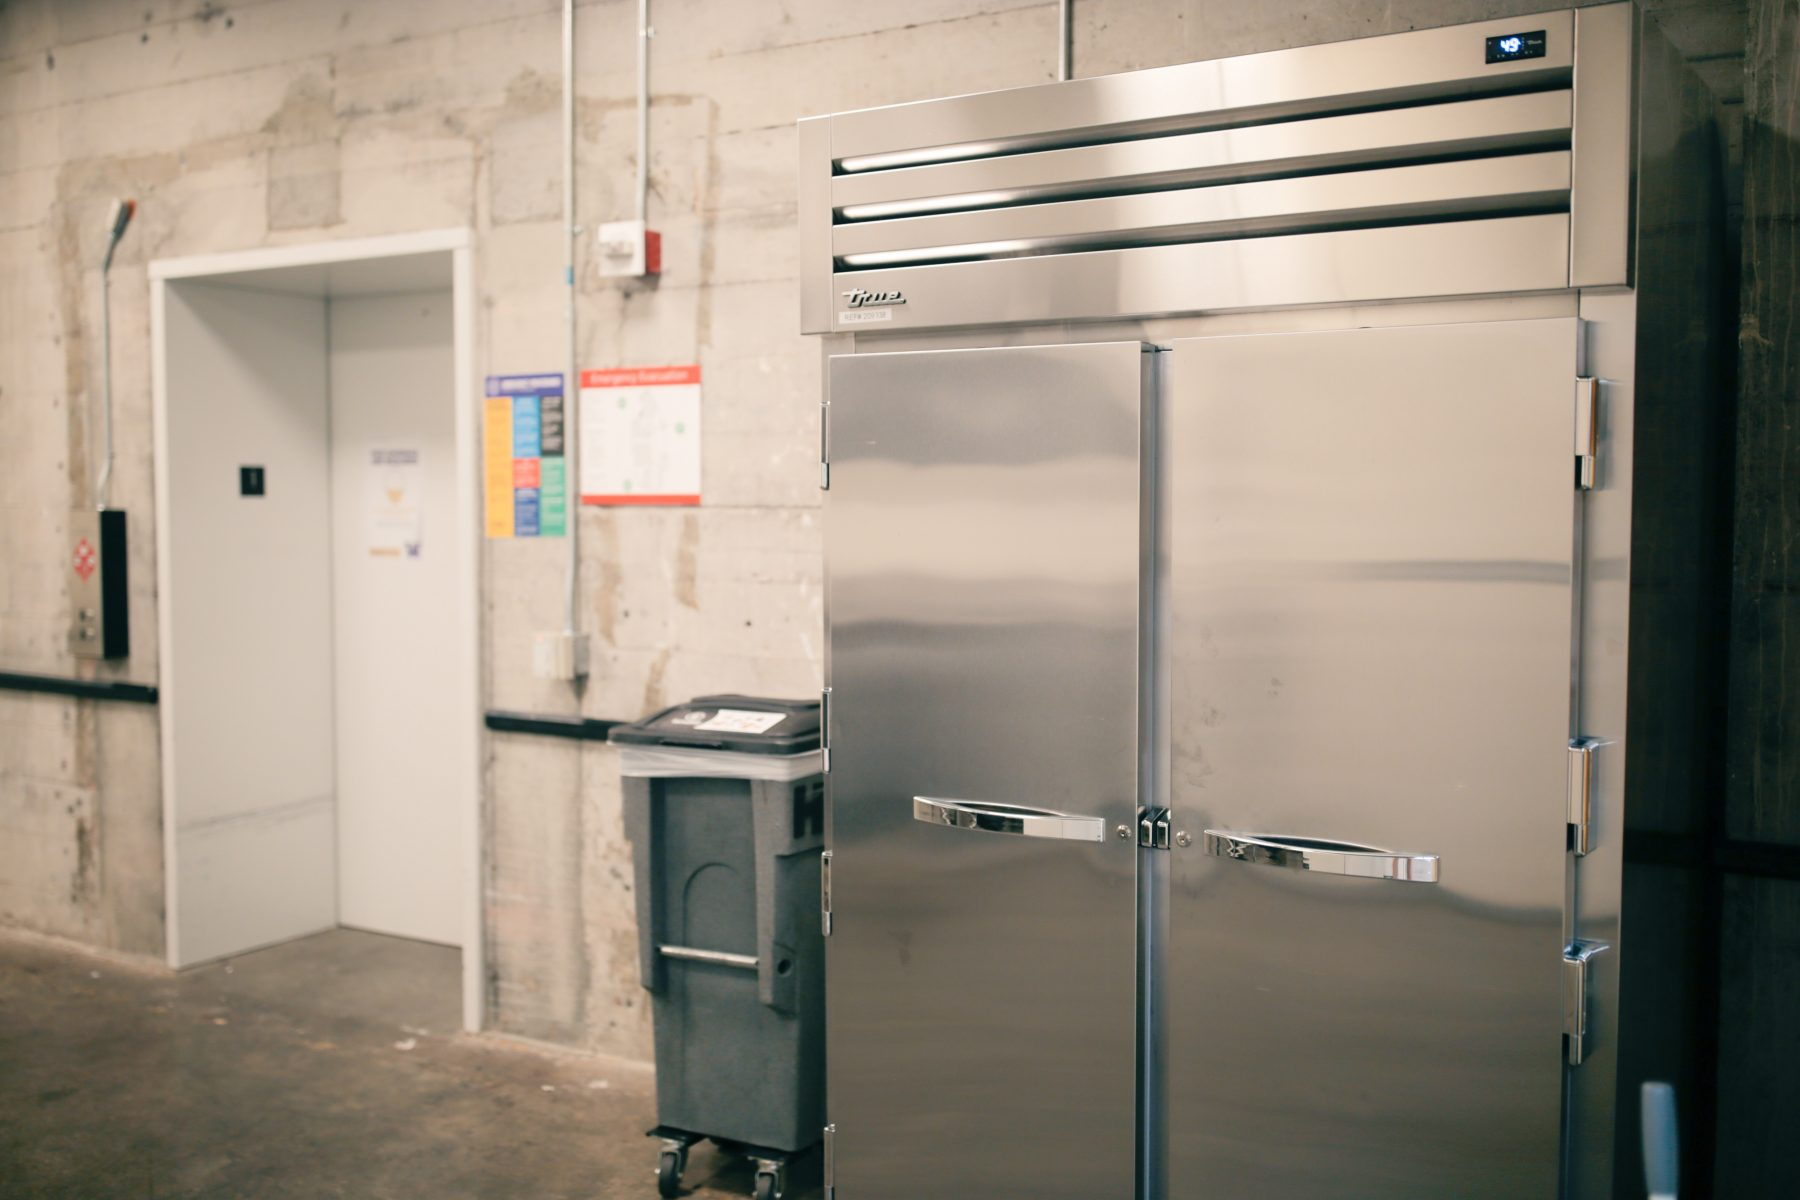 2 fridges are available for use